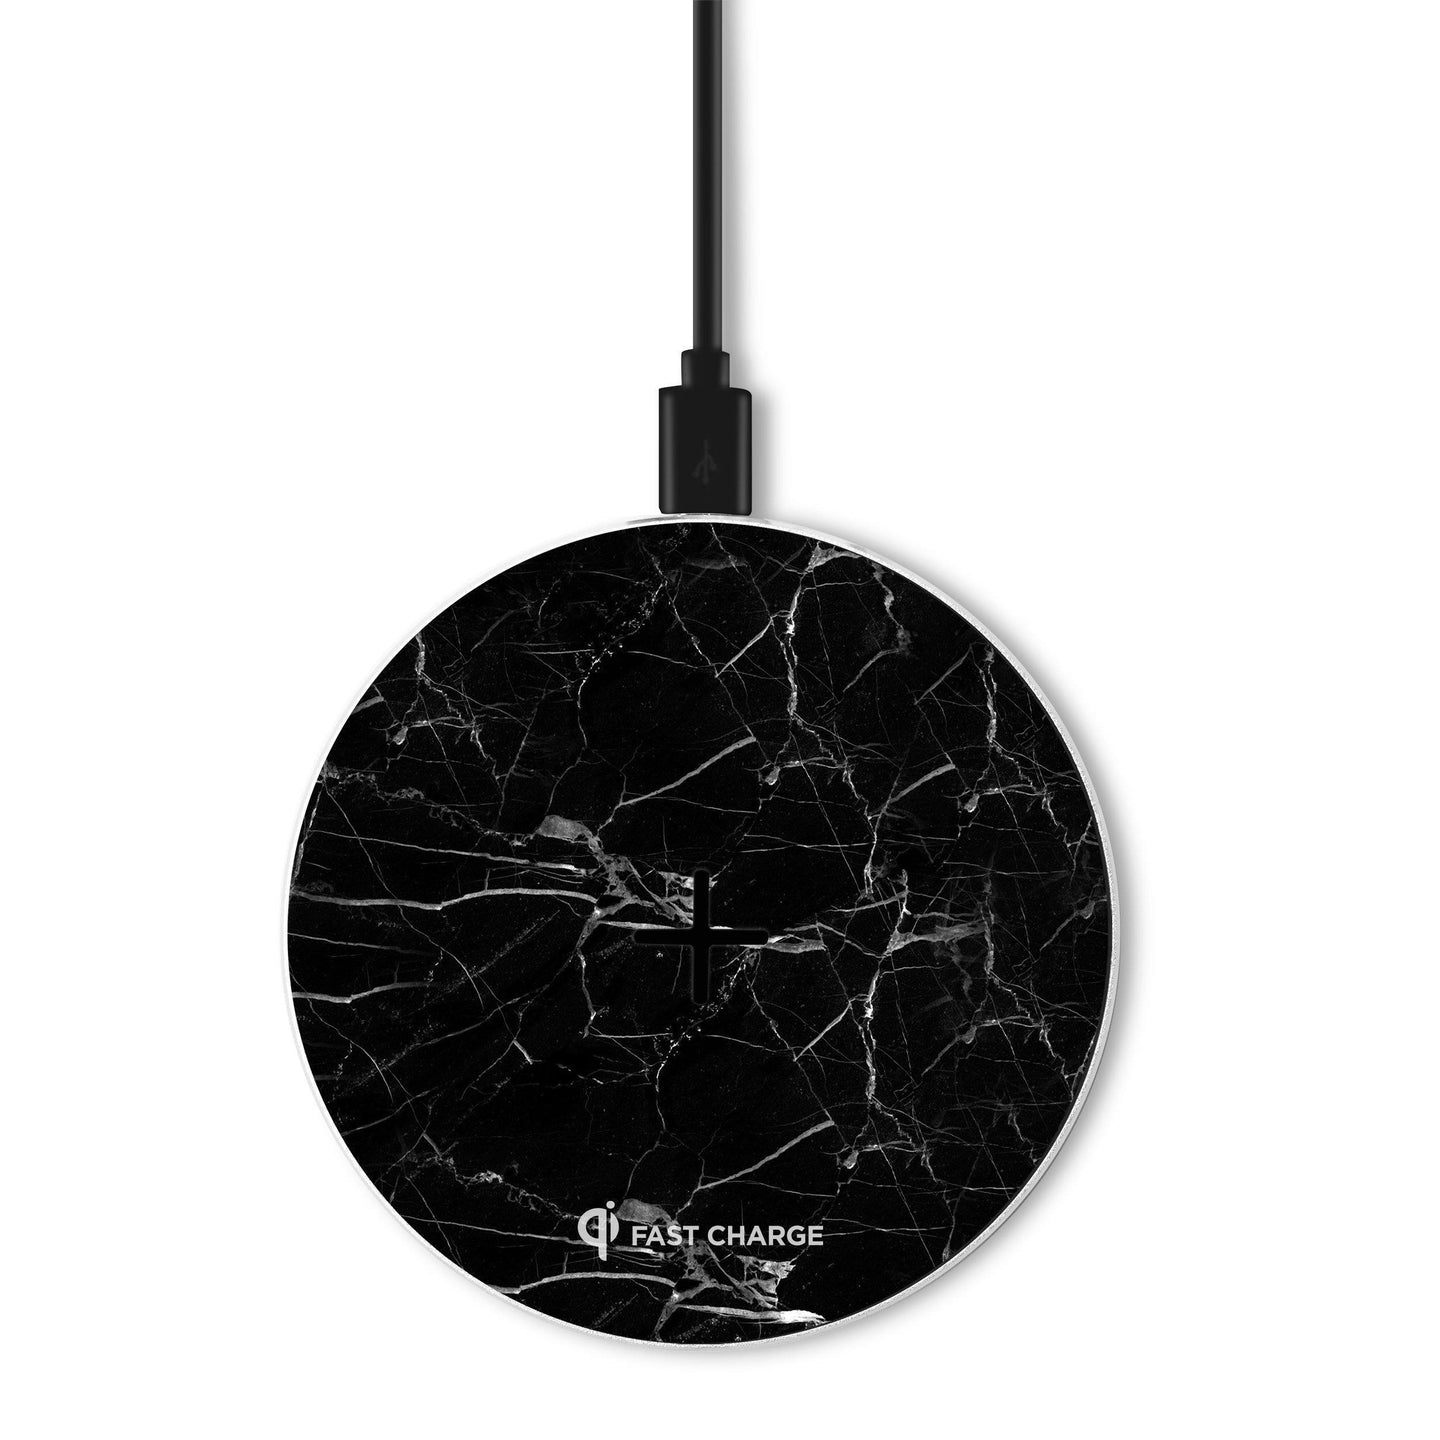 Apollo Marble -10 watt Fast Wireless Charging Pad - Black